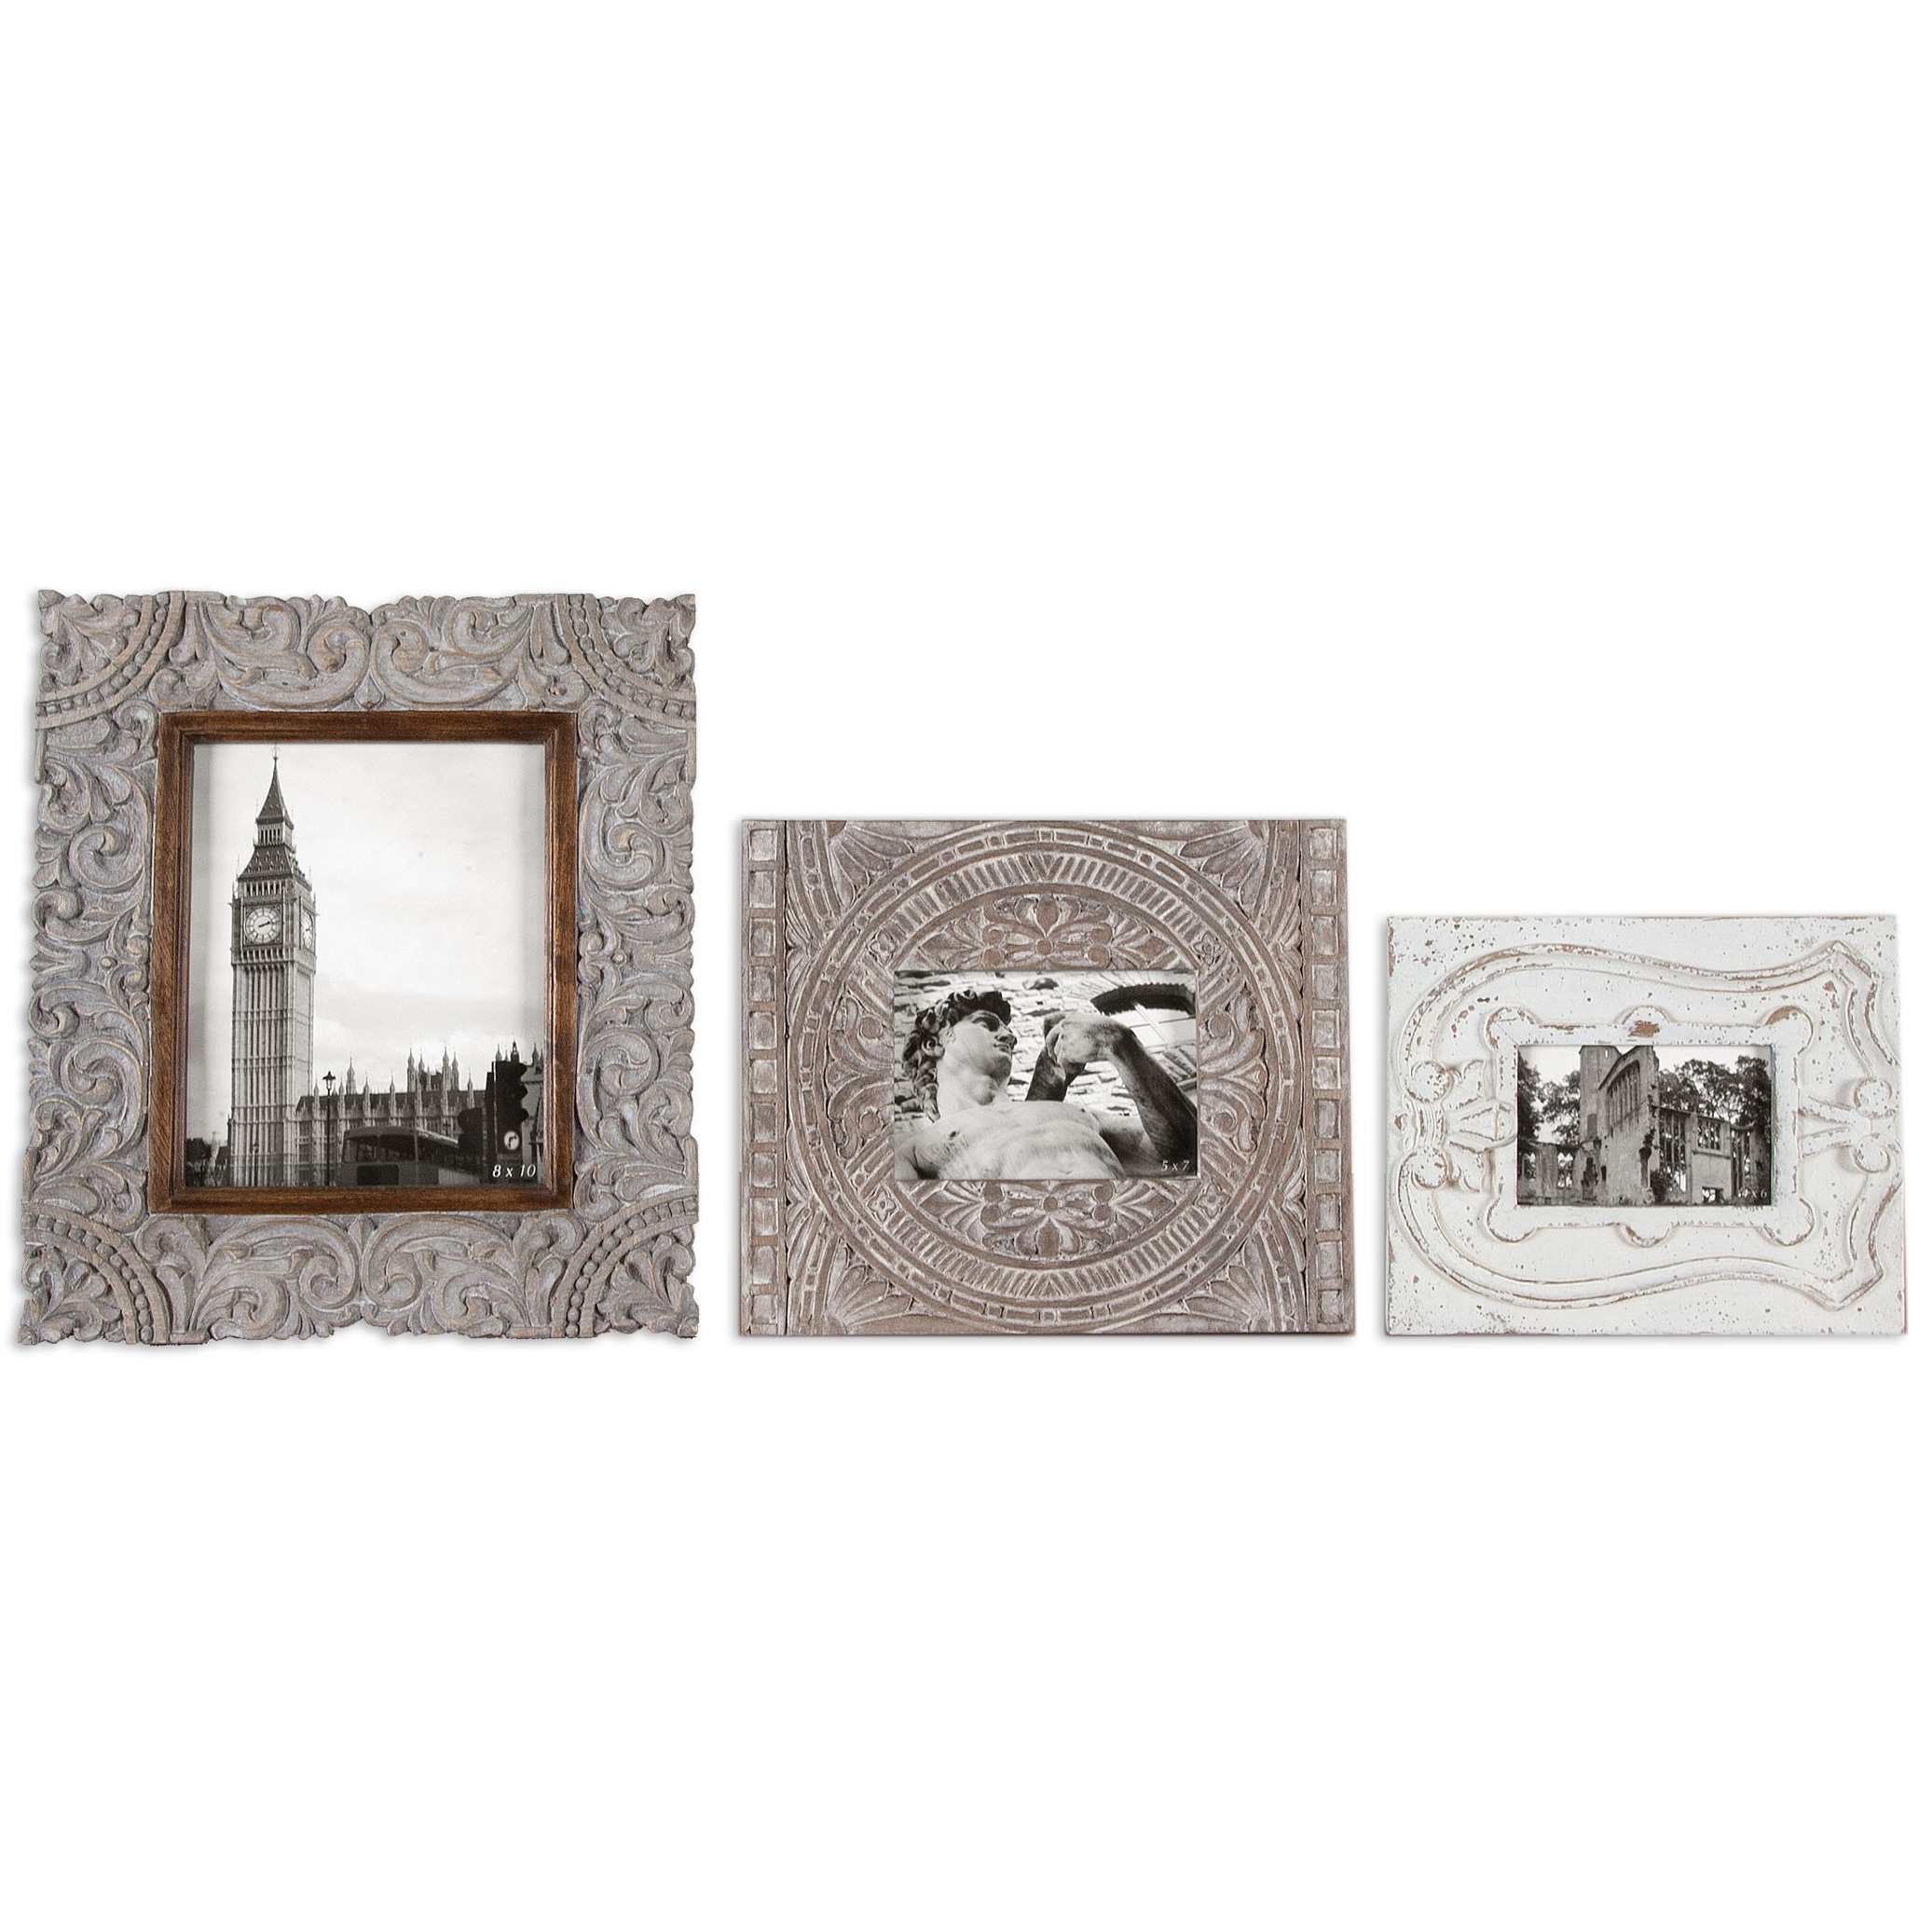 Designer photo frames eclectic photo frames kathy kuo home rouen french country carved antique white photo frames set of 3 jeuxipadfo Image collections